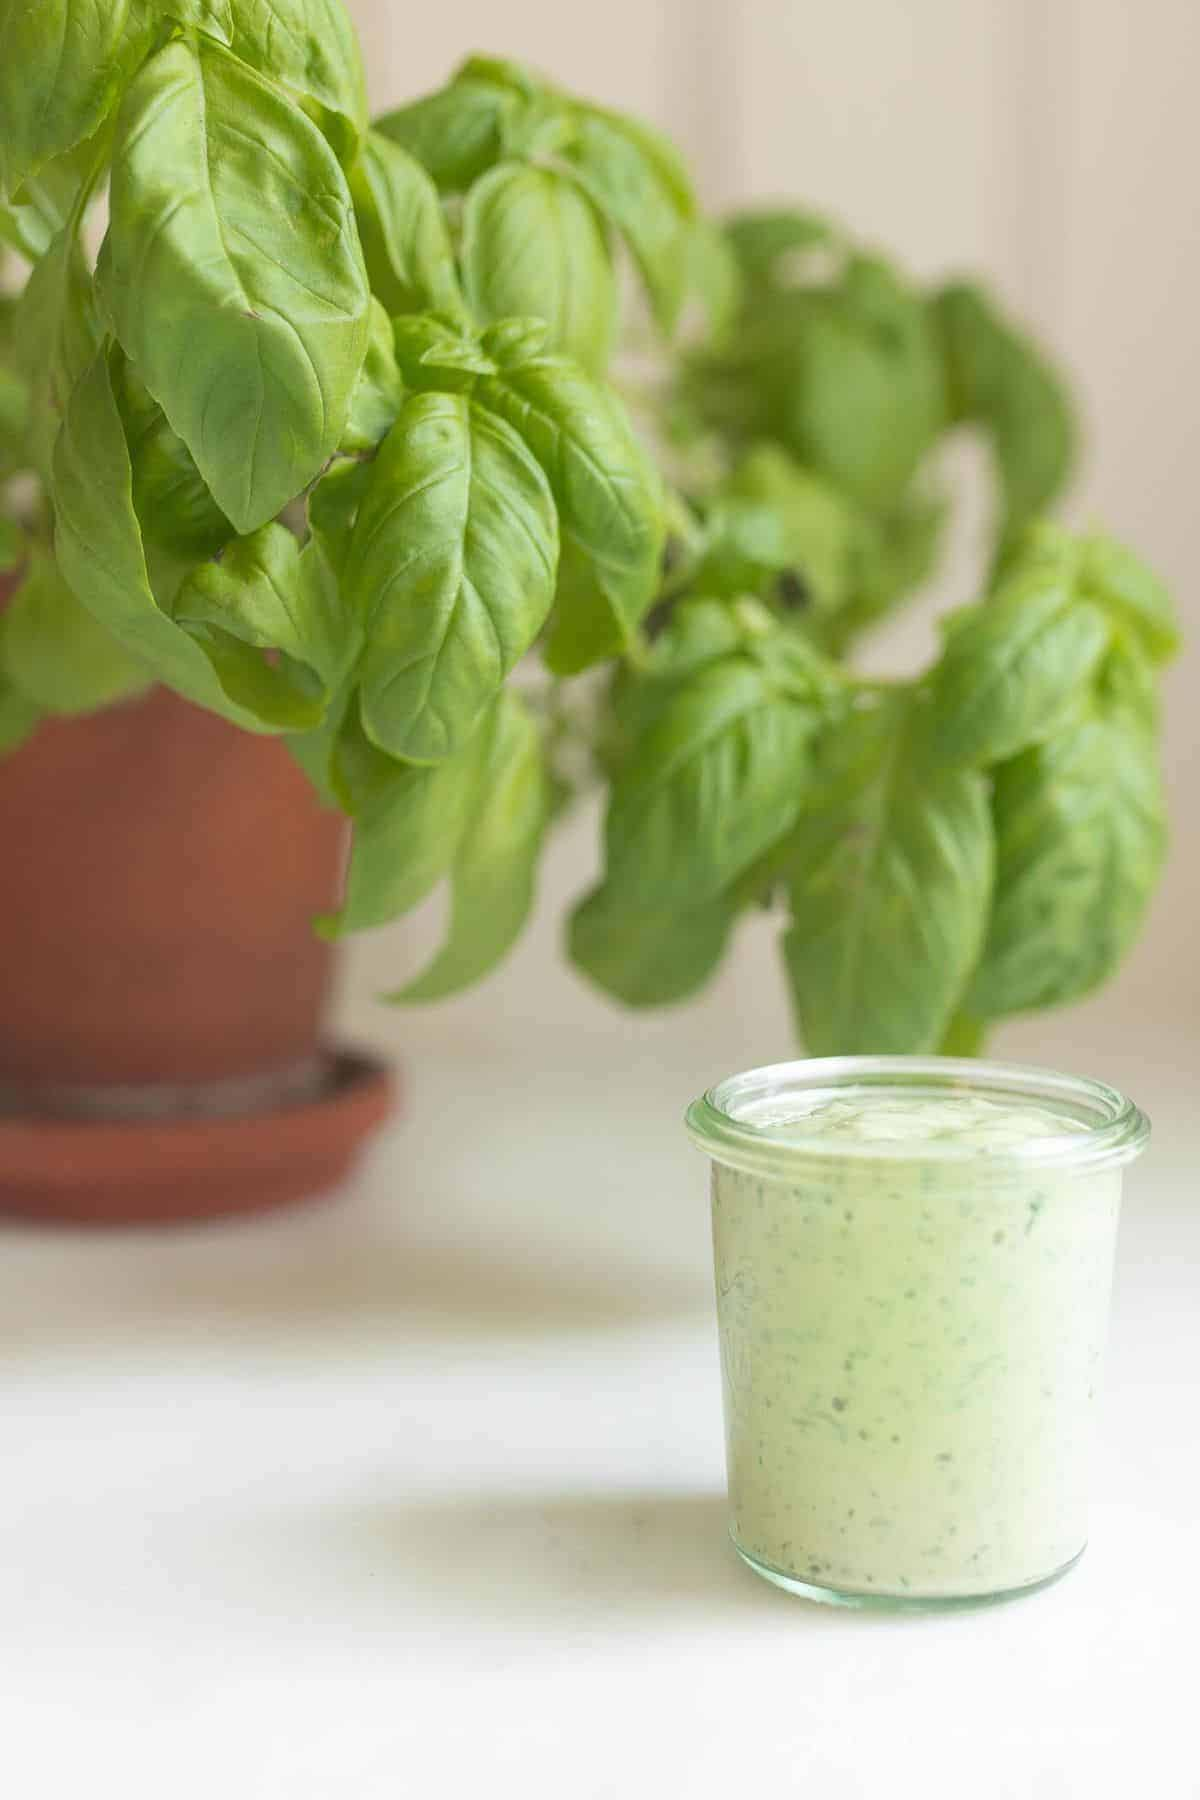 Pesto aioli in a glass jar on a white surface with a basil plant to the side.